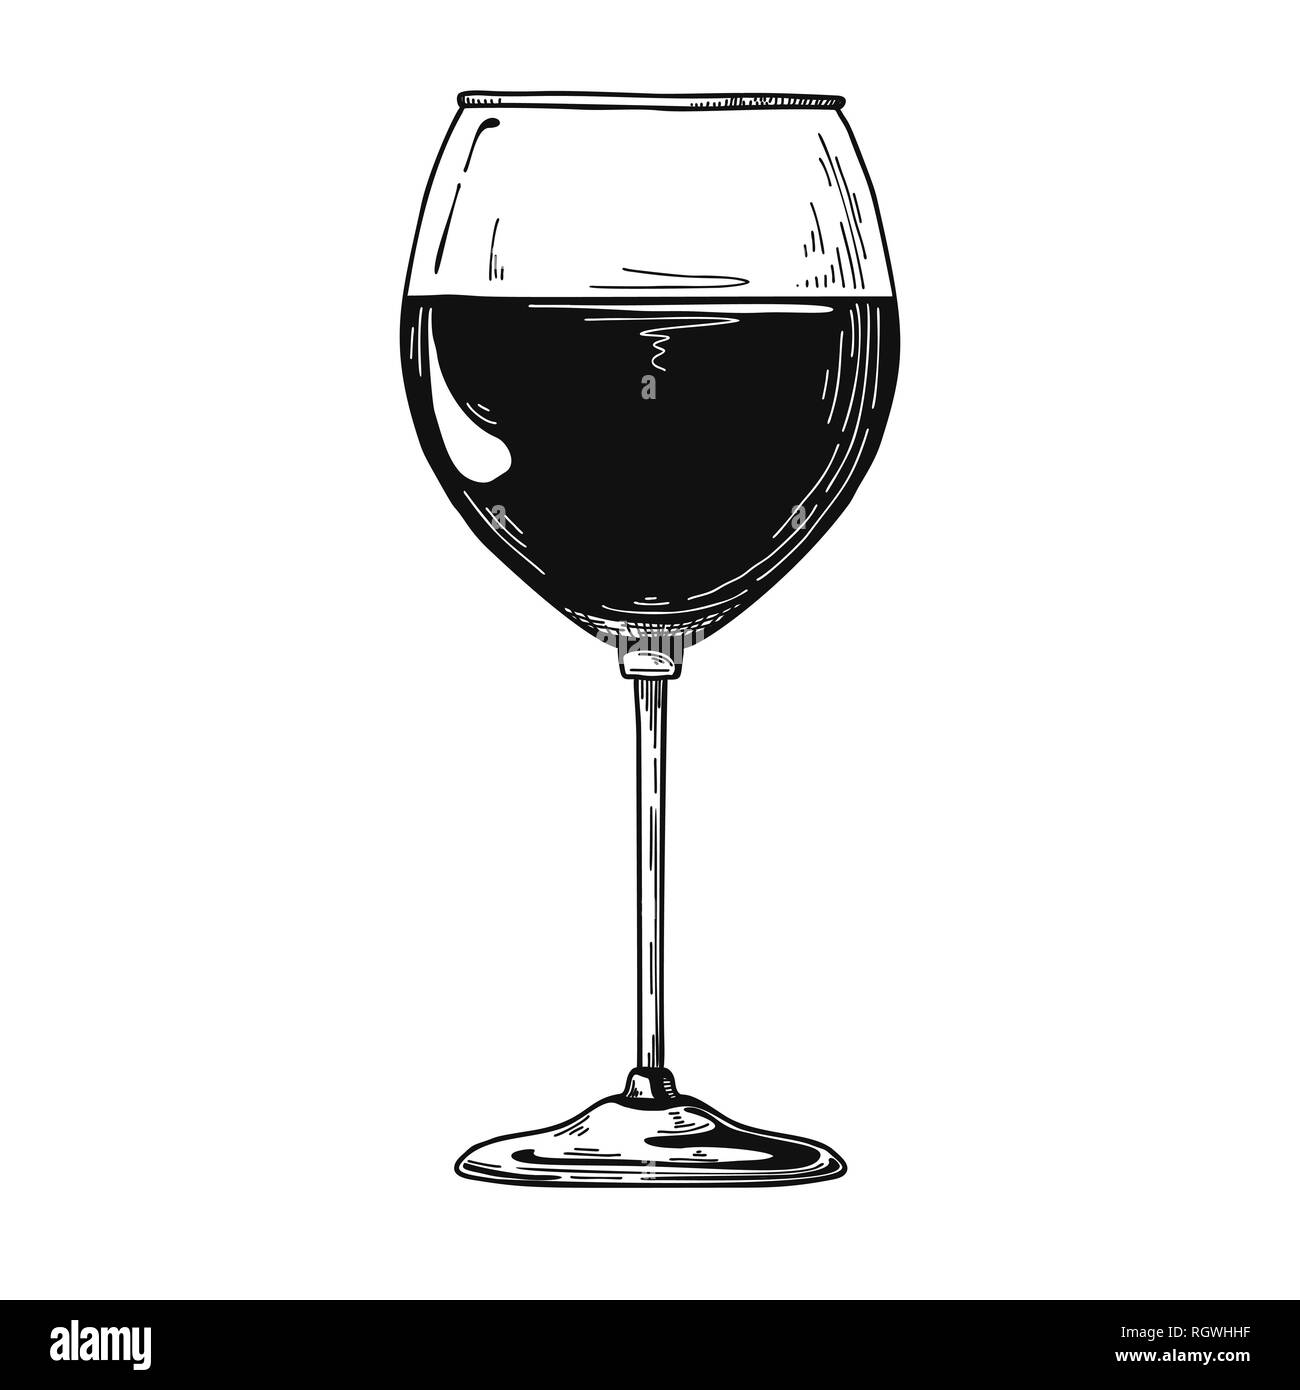 Standard red wine glass. Vector illustration on white background. Stock Vector